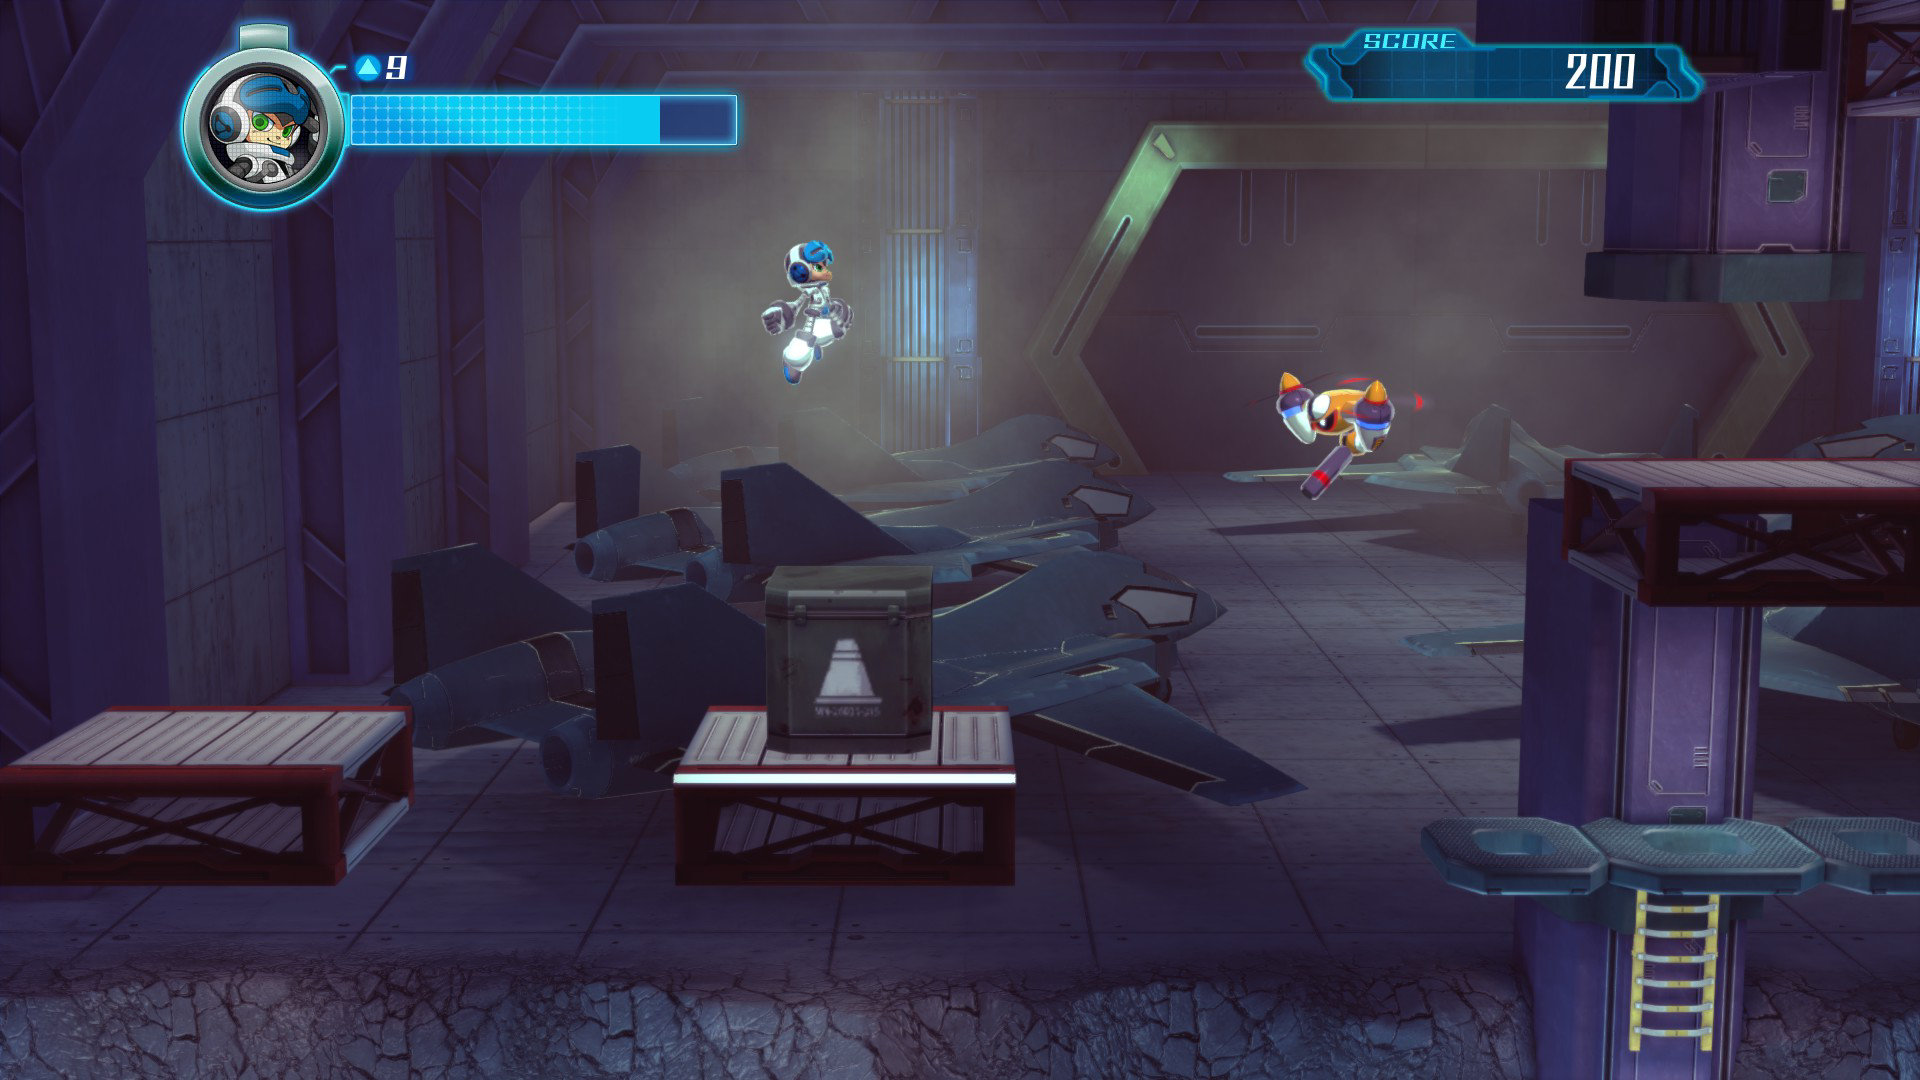 mighty-no-9-screenshot-02-ps4-ps3-psv-us